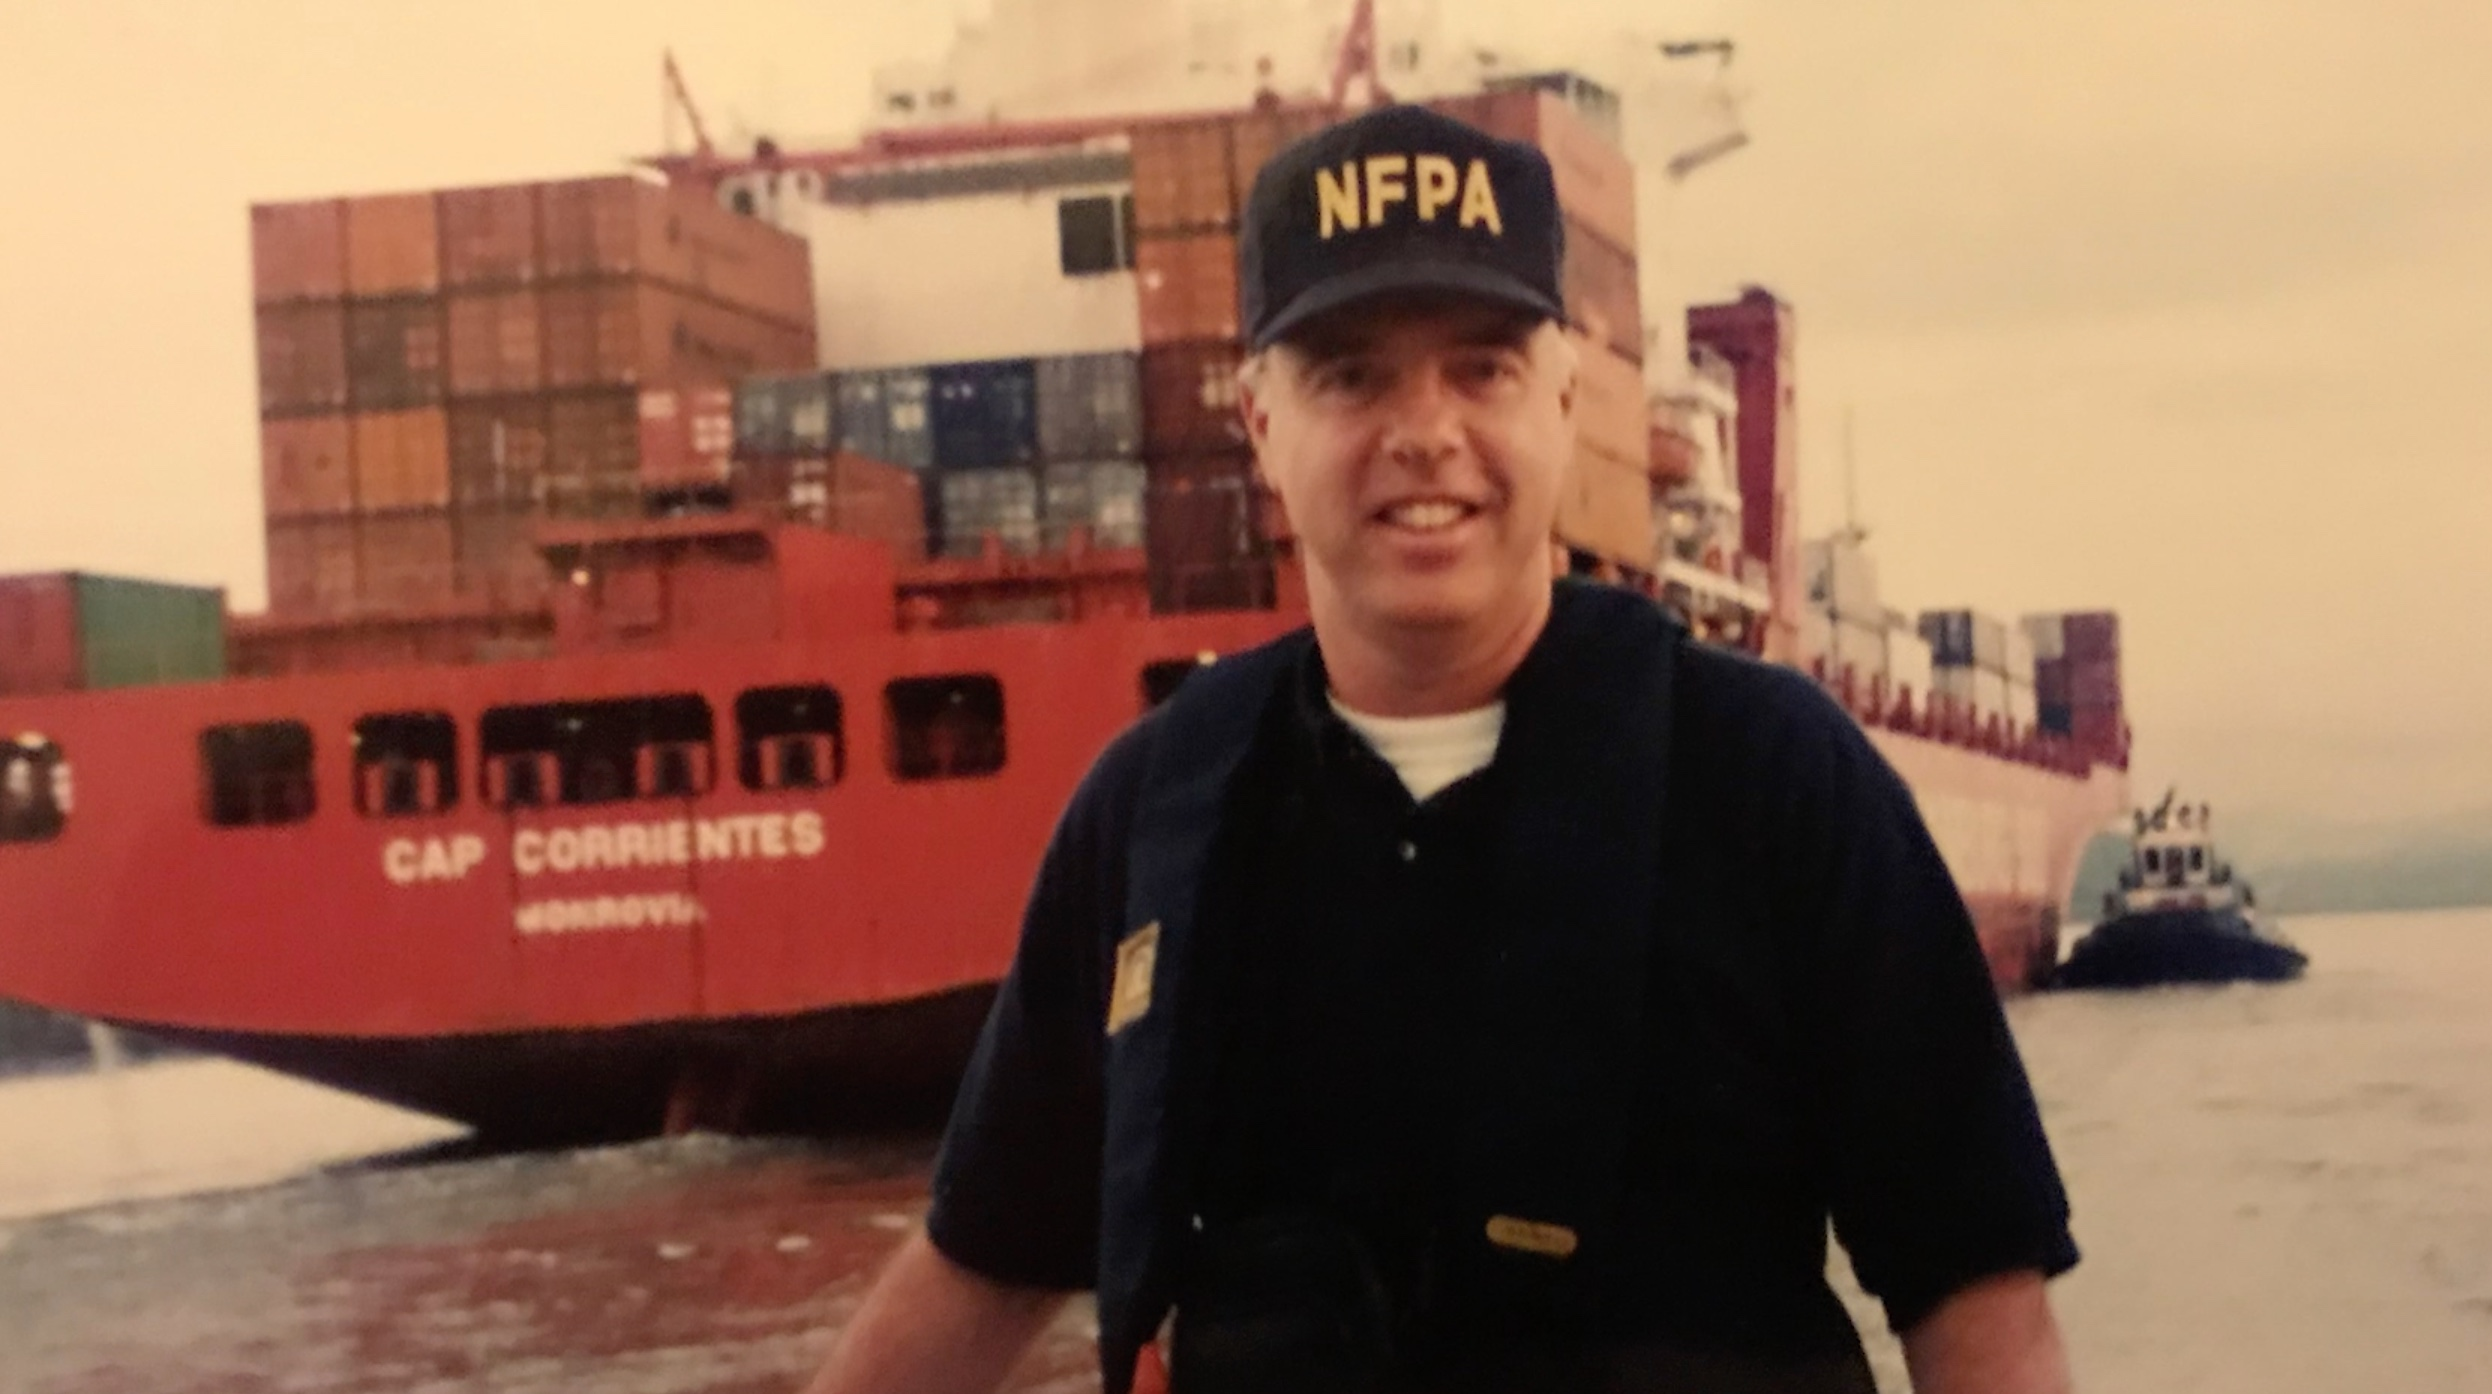 Russ Sanders of the NFPA in younger days.